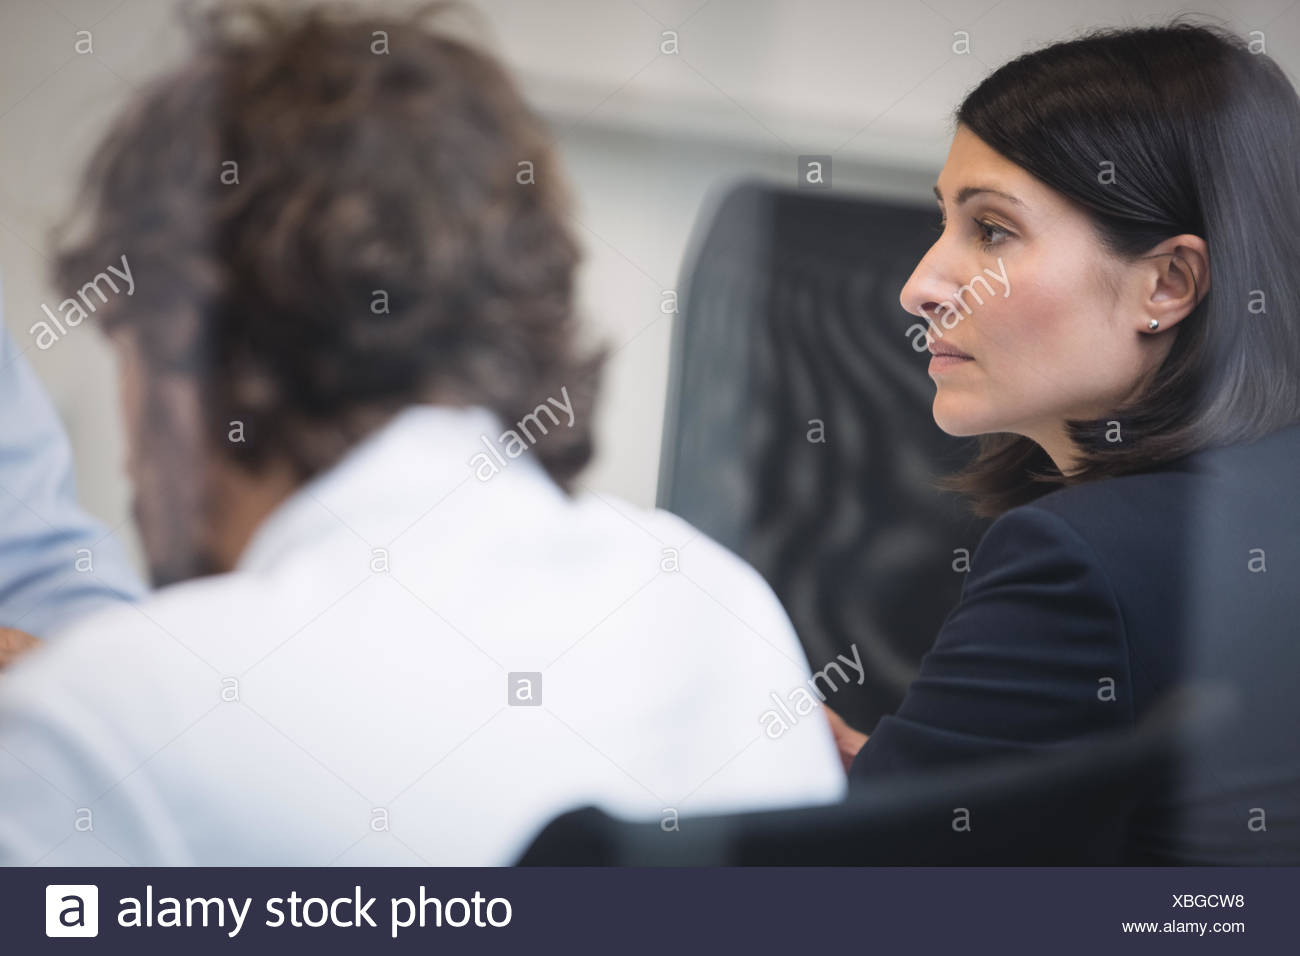 Businesswoman attending a meeting - Stock Image